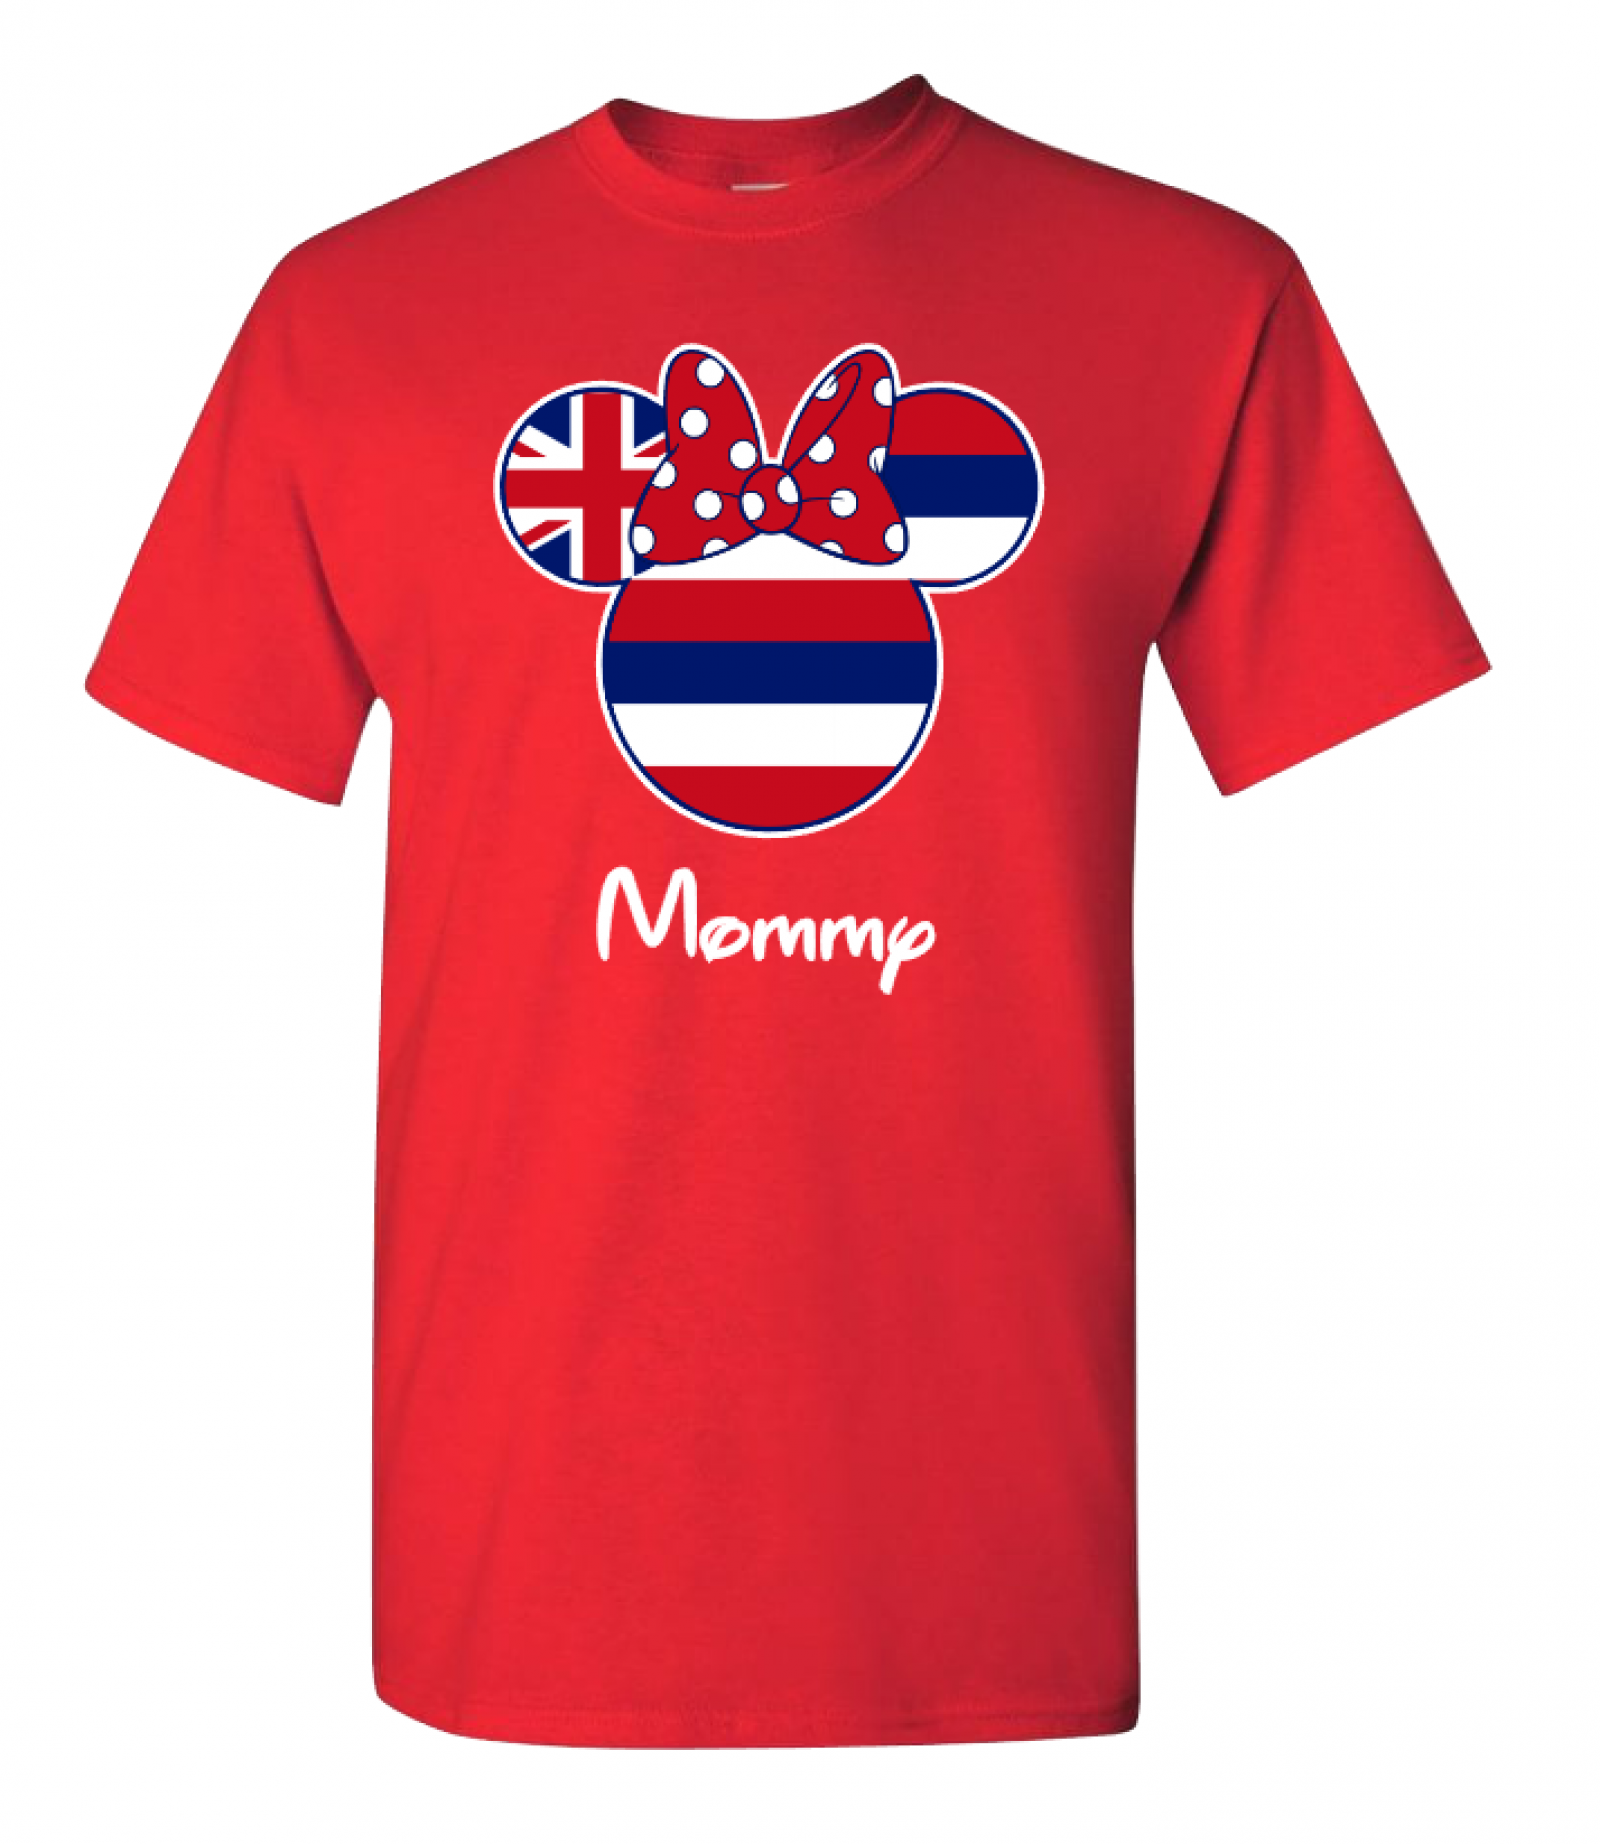 ccc71c1f639fbd Disney Hawaii American Flag Family Mickey Mouse and Minnie Mouse T-Shirt